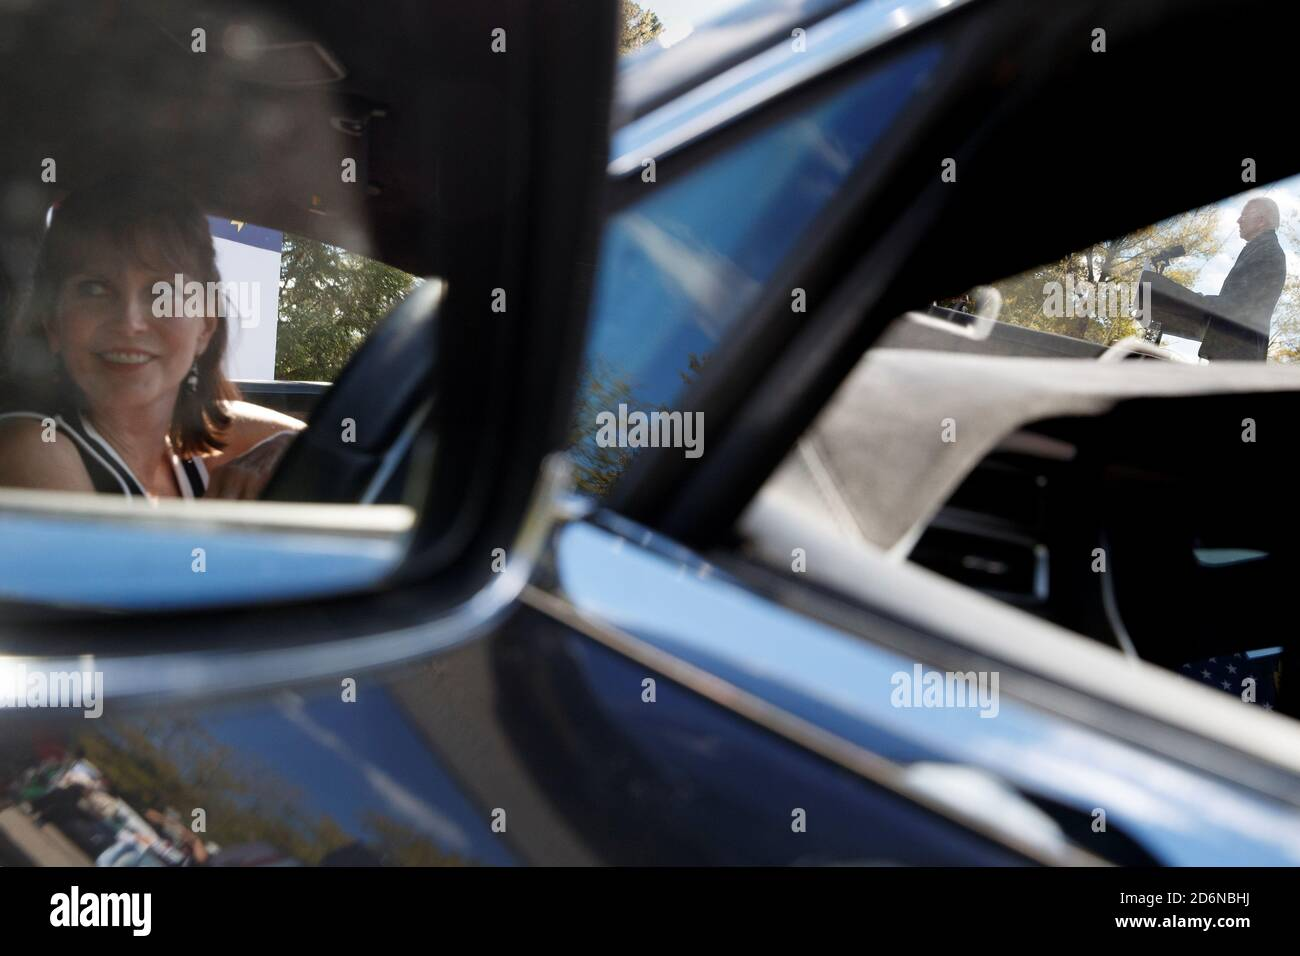 Alisa Edwards Smith, of Chapel Hill, NC, looks on from her vehicle as U.S. Democratic presidential candidate Joe Biden delivers remarks at a voter mobilization event at Riverside High School in Durham, North Carolina, U.S., October 18, 2020.  REUTERS/Tom Brenner Stock Photo